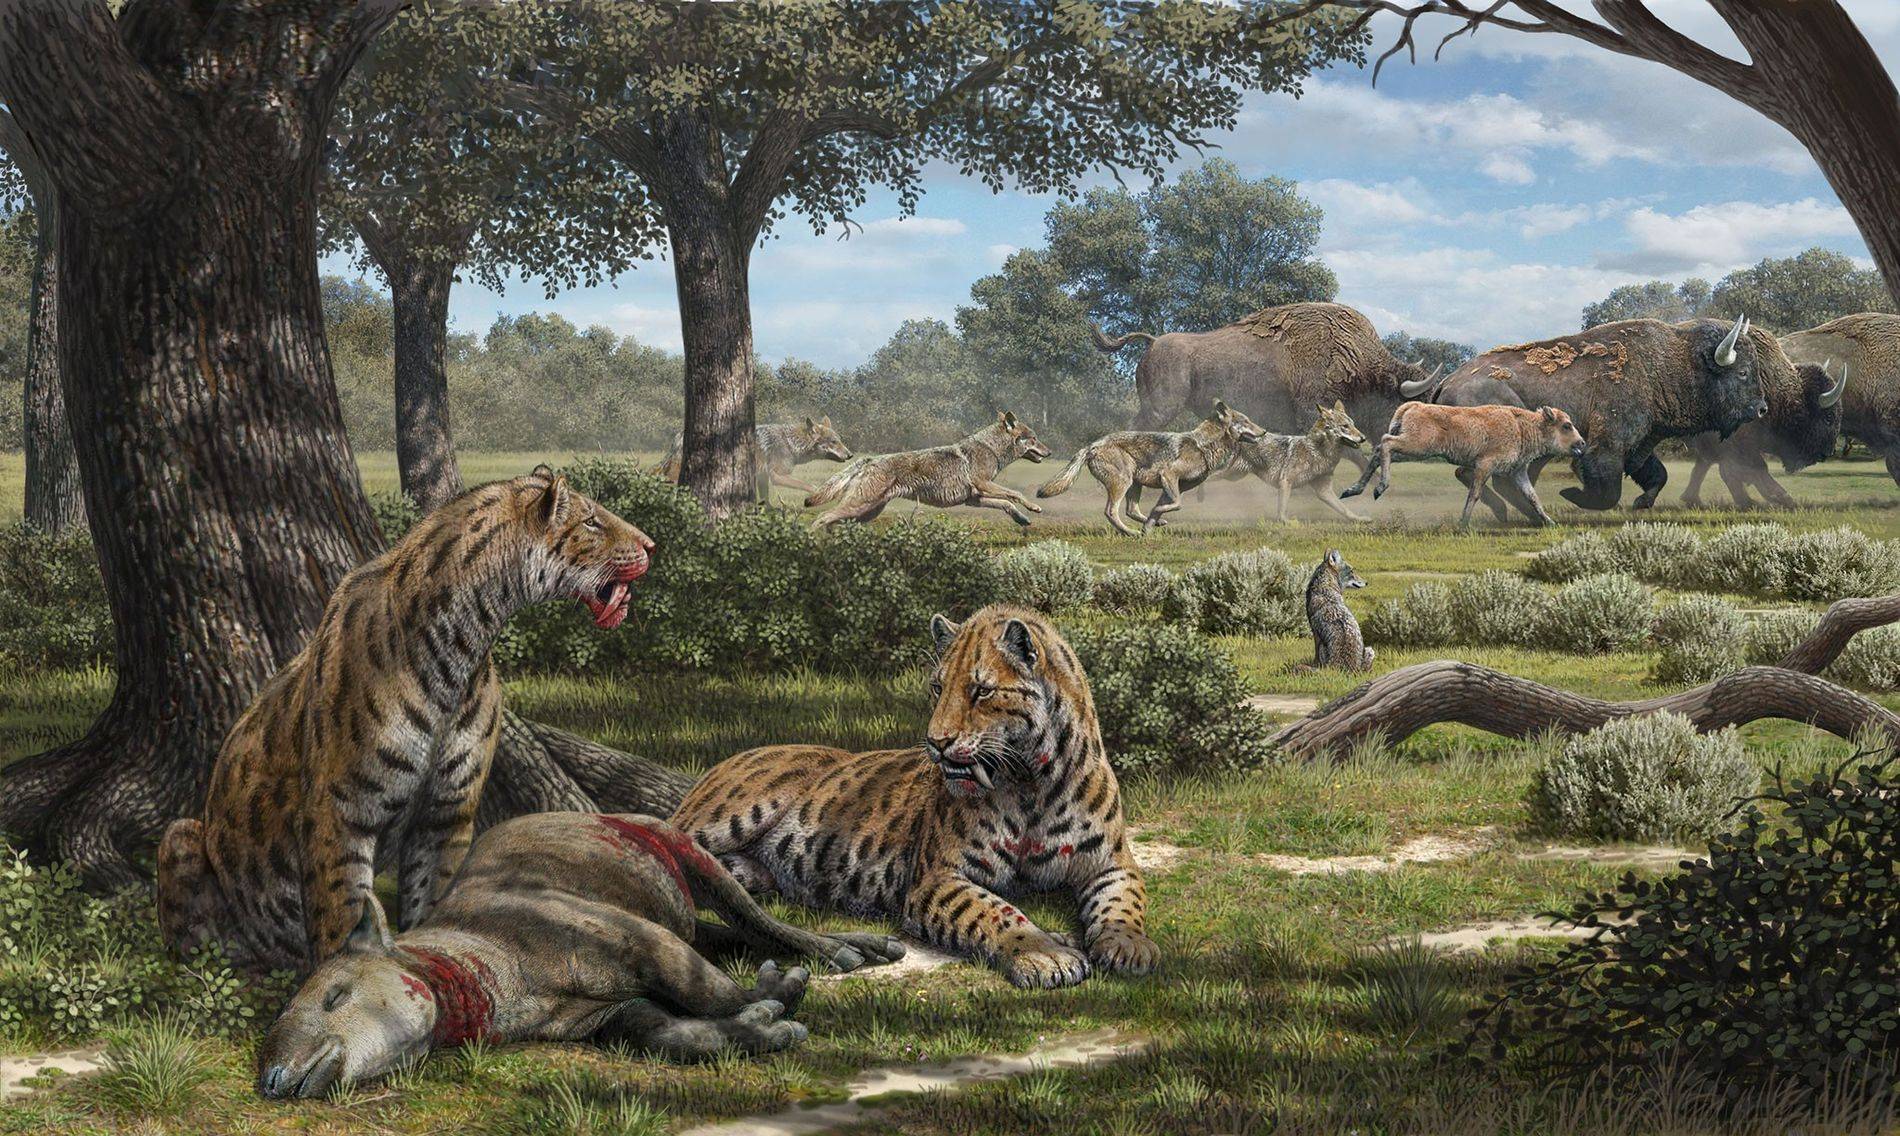 Dappled by leafy shade, sabre-tooth cats feast on a forest herbivore while dire wolves chase bison ...